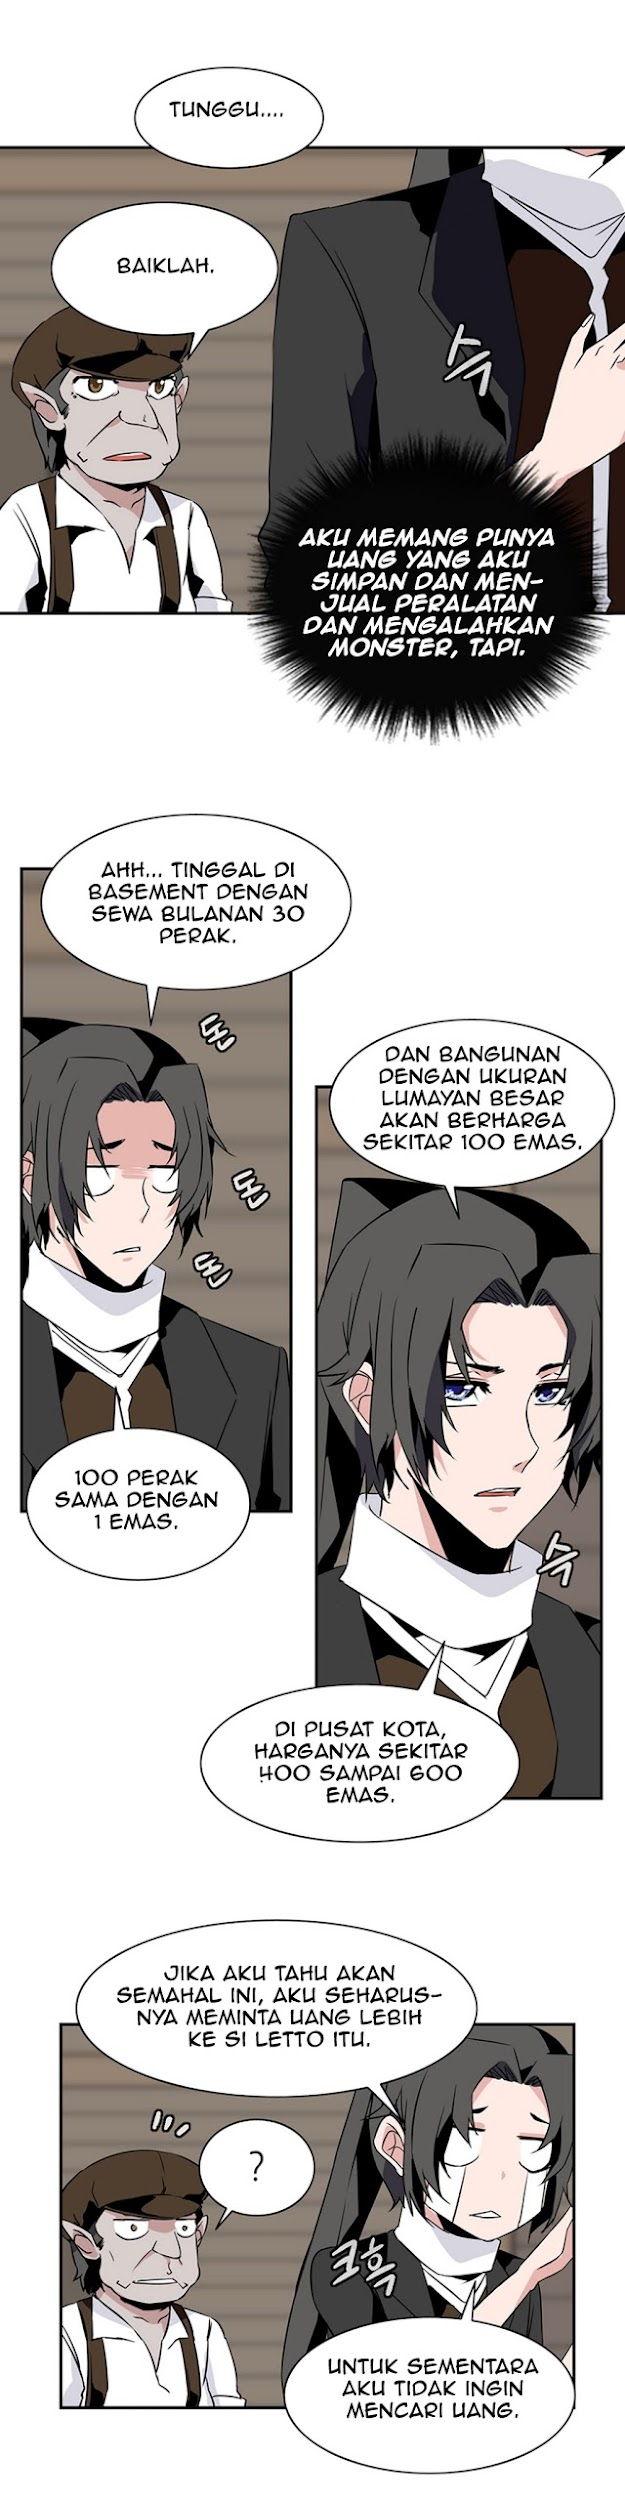 Dilarang COPAS - situs resmi www.mangacanblog.com - Komik wizardly tower 023 - chapter 23 24 Indonesia wizardly tower 023 - chapter 23 Terbaru 15|Baca Manga Komik Indonesia|Mangacan